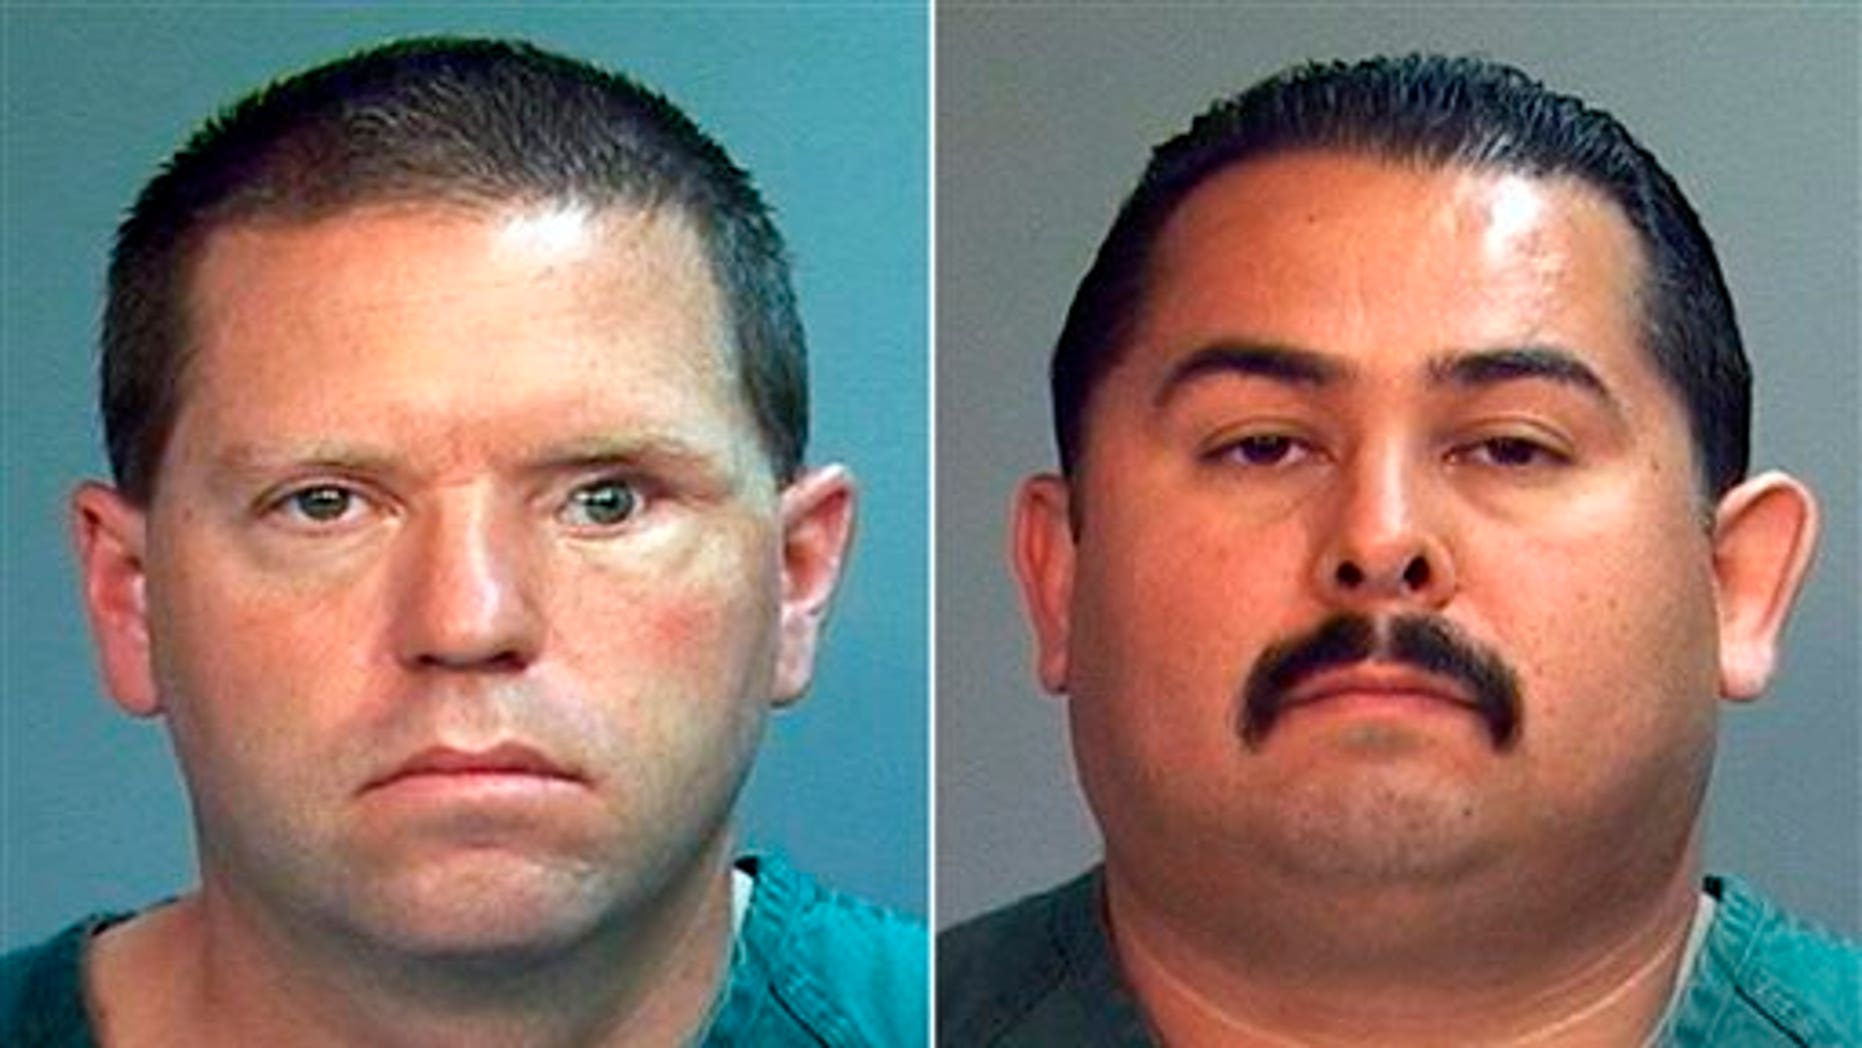 Former Fullerton Police Officers Jay Cicinelli, left, and Manuel Ramos.